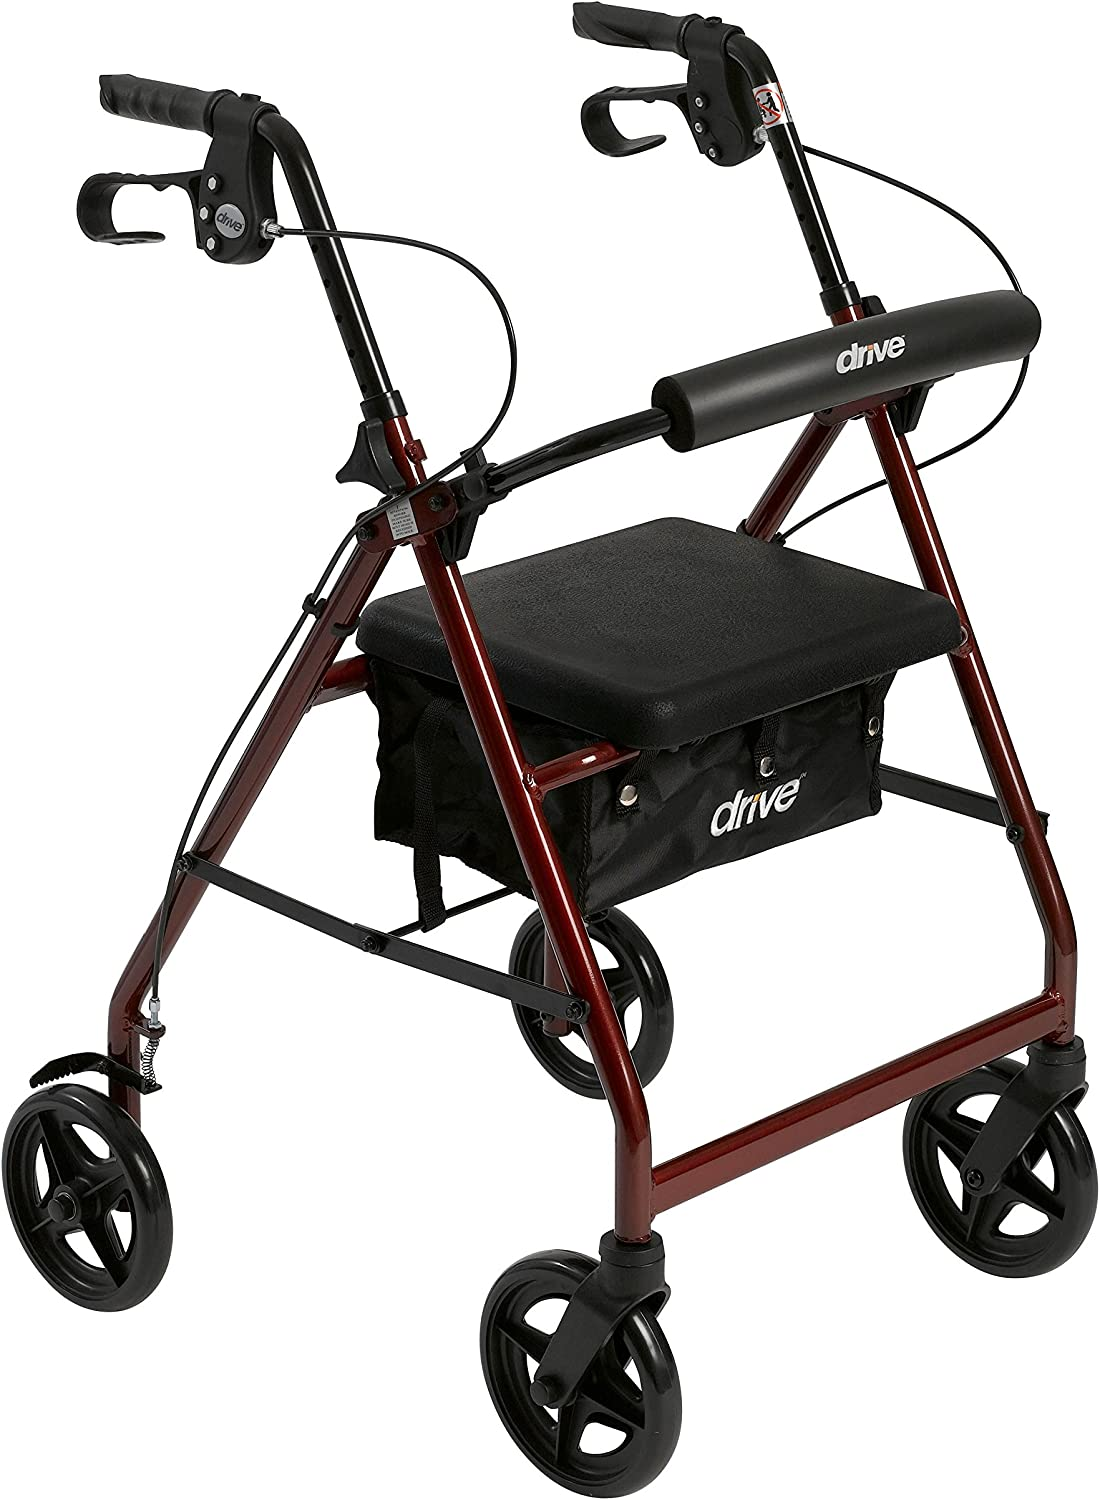 B002VWK3FW Drive Medical Aluminum Rollator Fold Up and Removable Back Support, Padded Seat with 7.5-Inch Casters, Red 81MbJW2EPoL